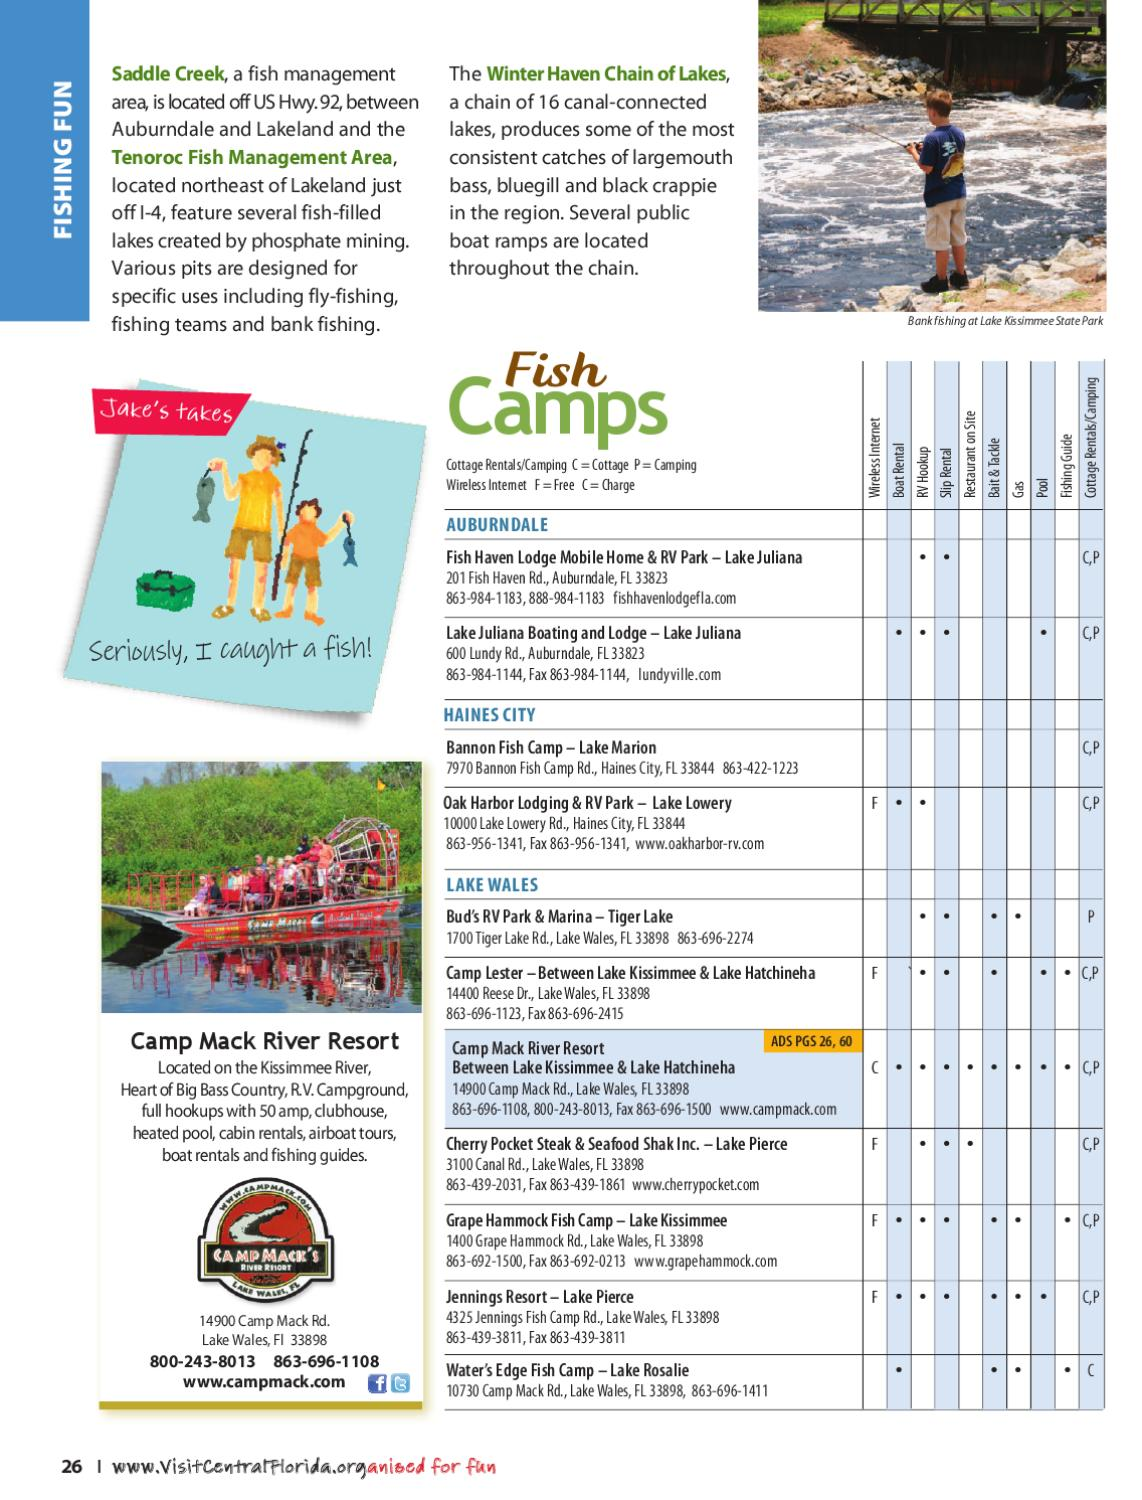 Central florida vacation guide 2012 edition by jessica for Tenoroc fish management area